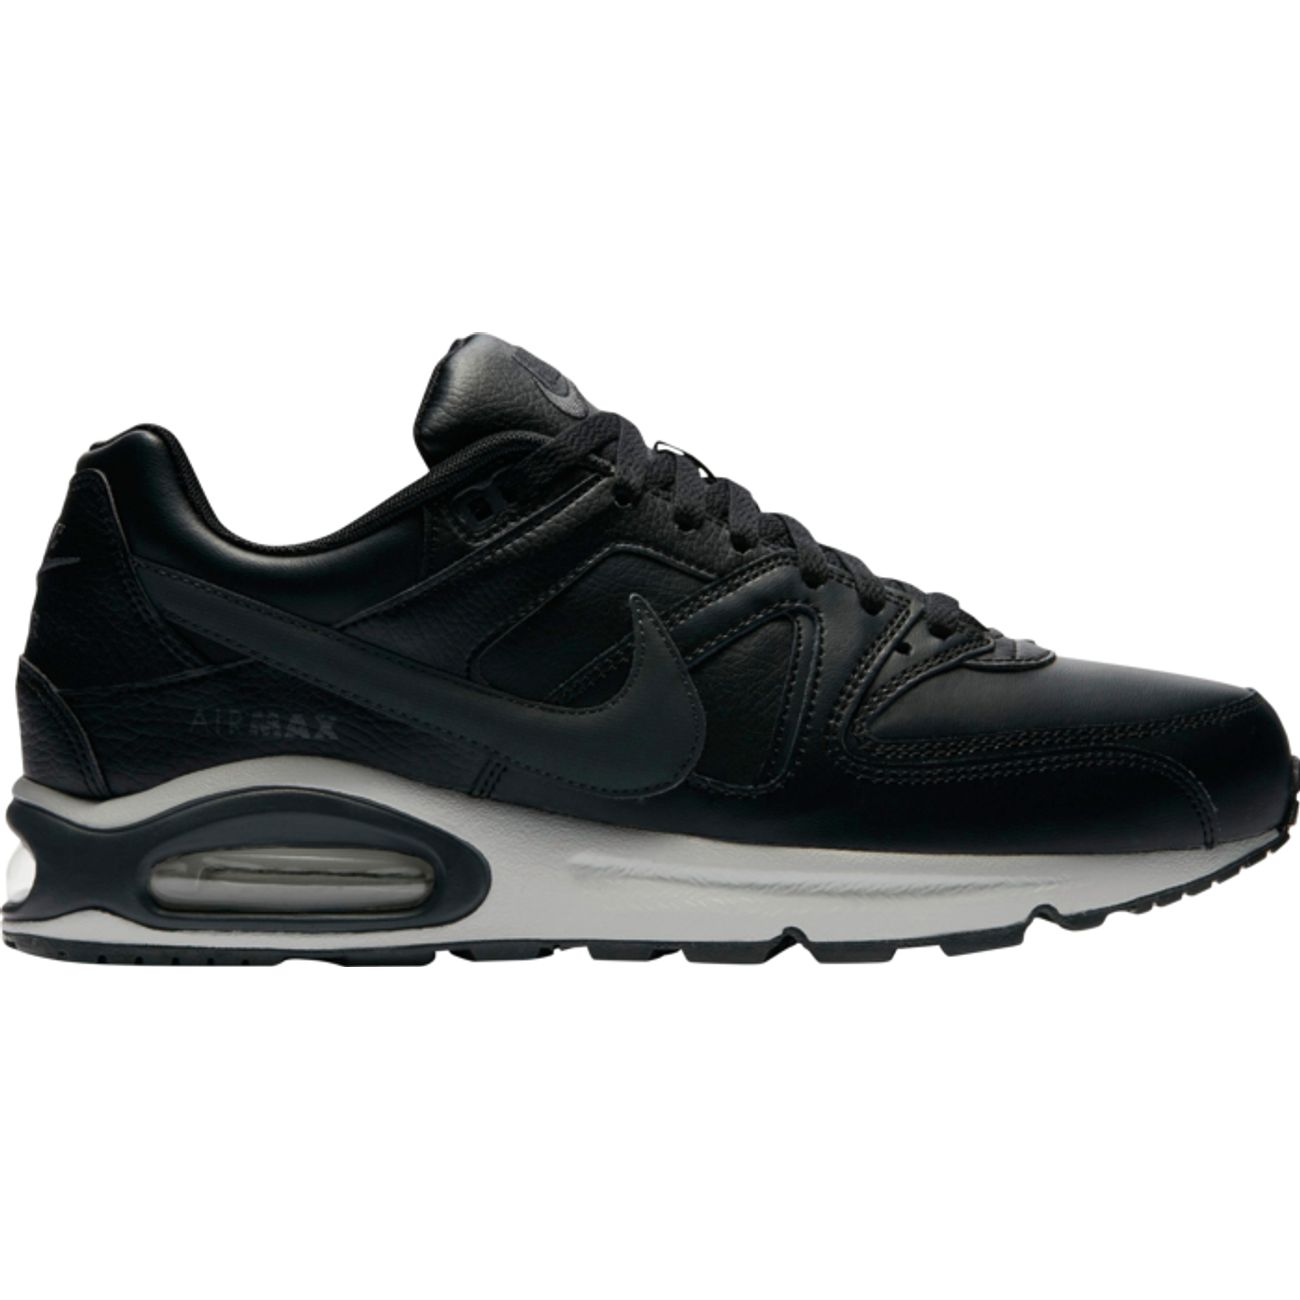 official photos 2ea46 dedb8 CHAUSSURES BASSES Loisirs homme NIKE AIR MAX COMMAND